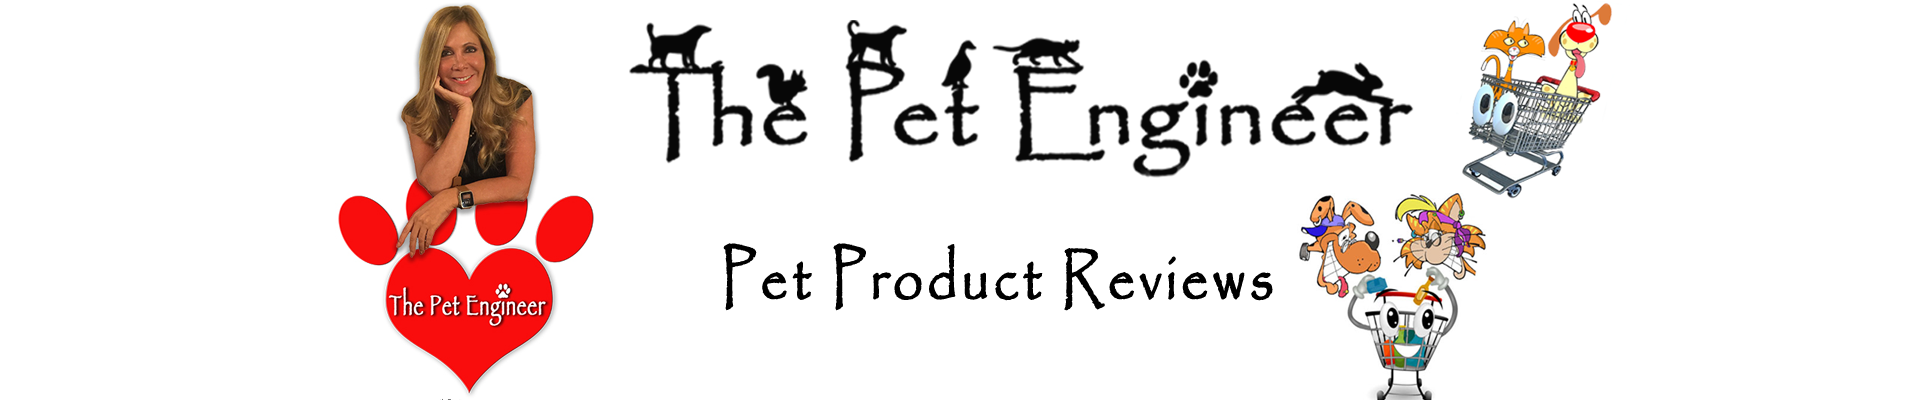 The Pet Product Reviews